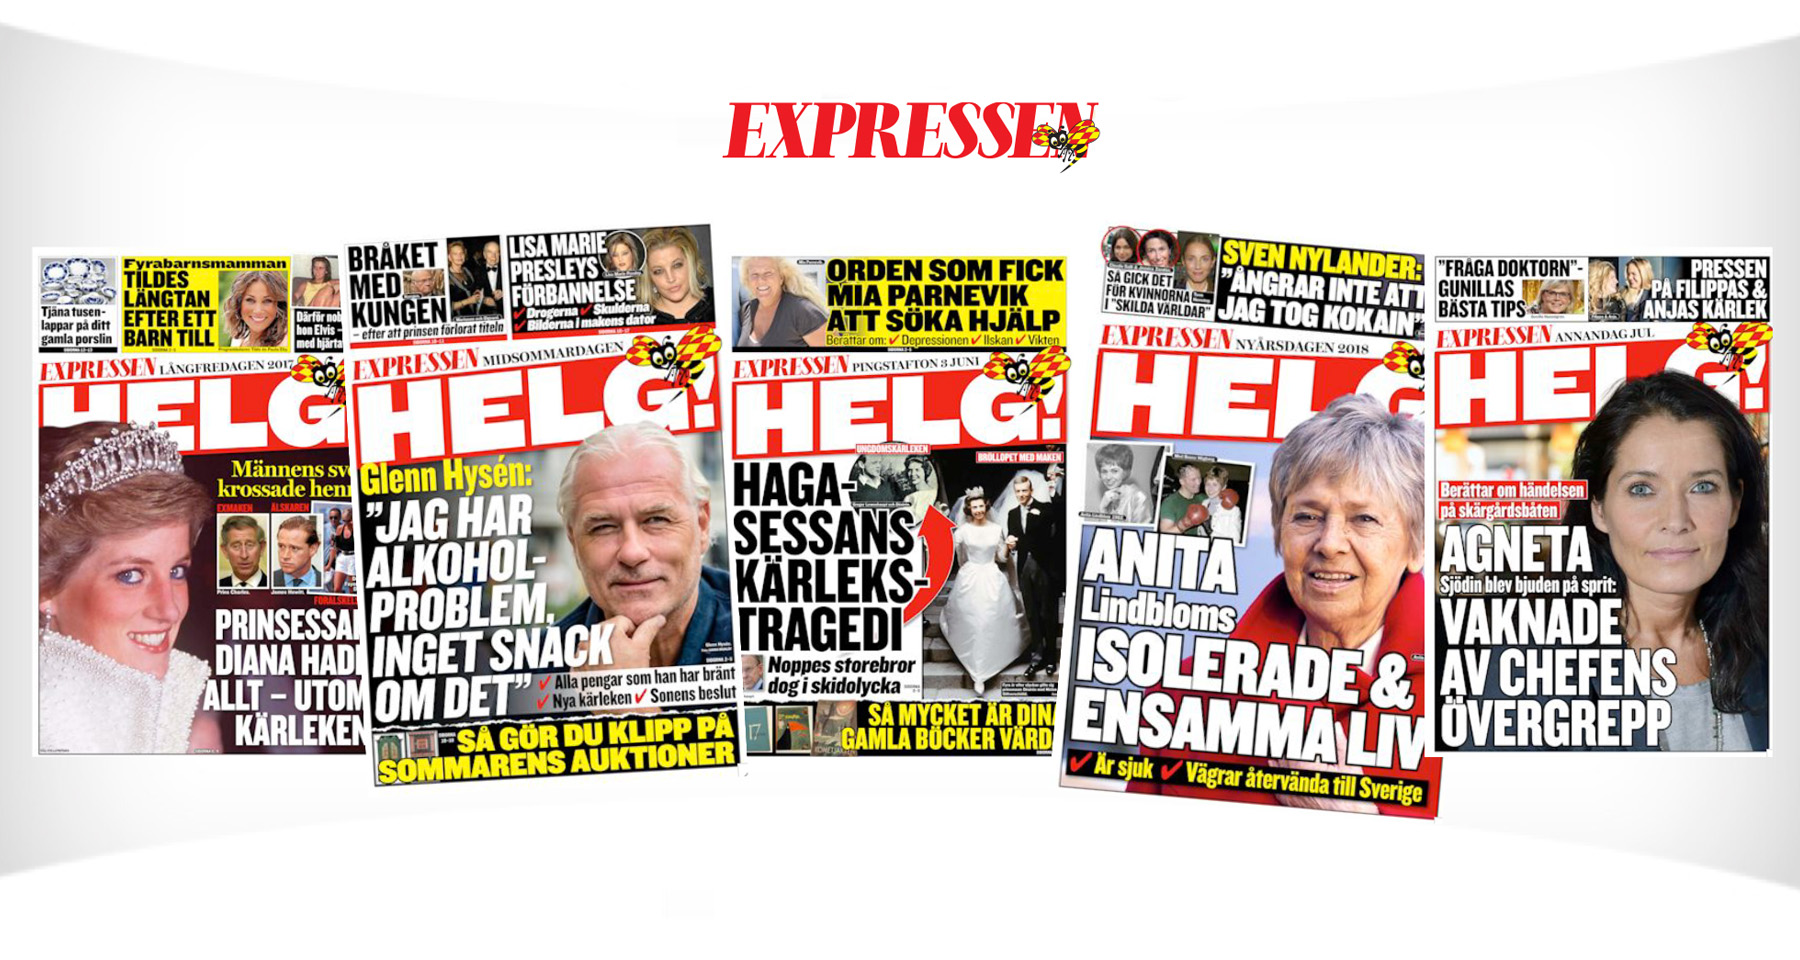 Expressen generates revenue, grows female readership with print supplement